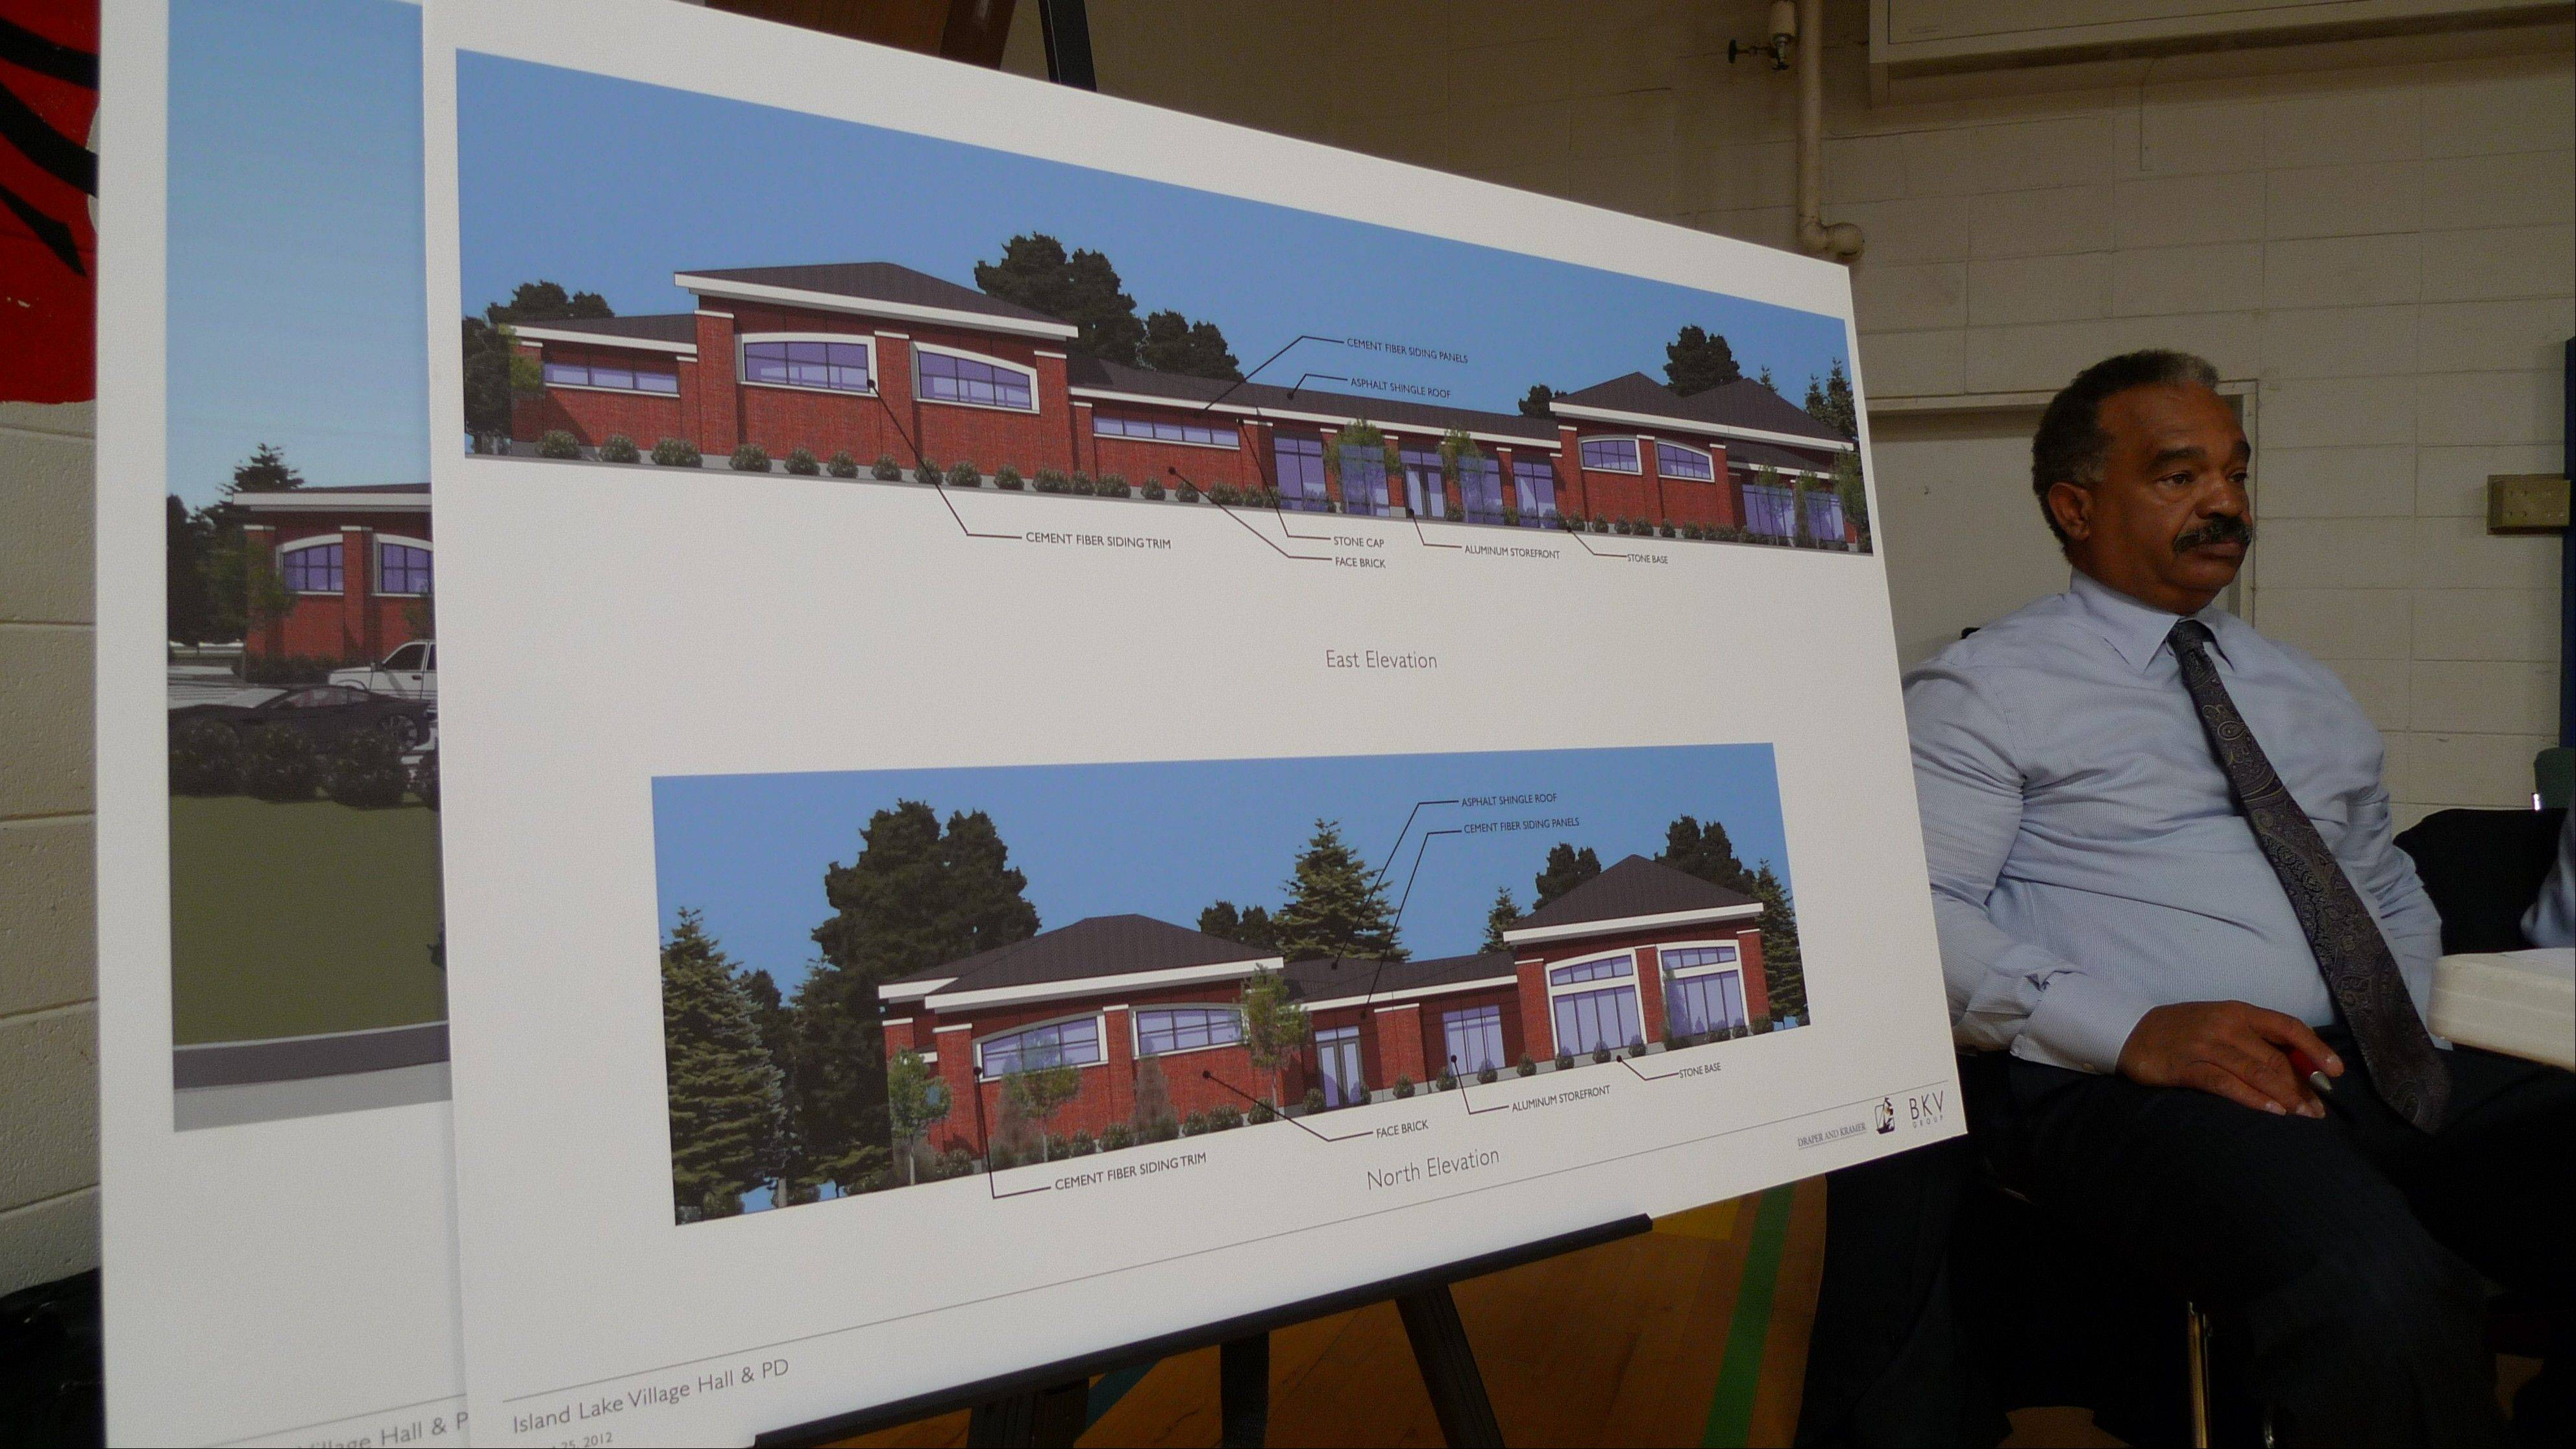 Wayne L. Pierce, managing director at Stern Brothers & Co., sits next to a drawing of a proposed new municipal center Saturday in Island Lake.$PHOTOCREDIT_ON$$PHOTOCREDIT_OFF$$PHOTOCREDIT_ON$Dann Gire/ dgire@dailyherald.com$PHOTOCREDIT_OFF$